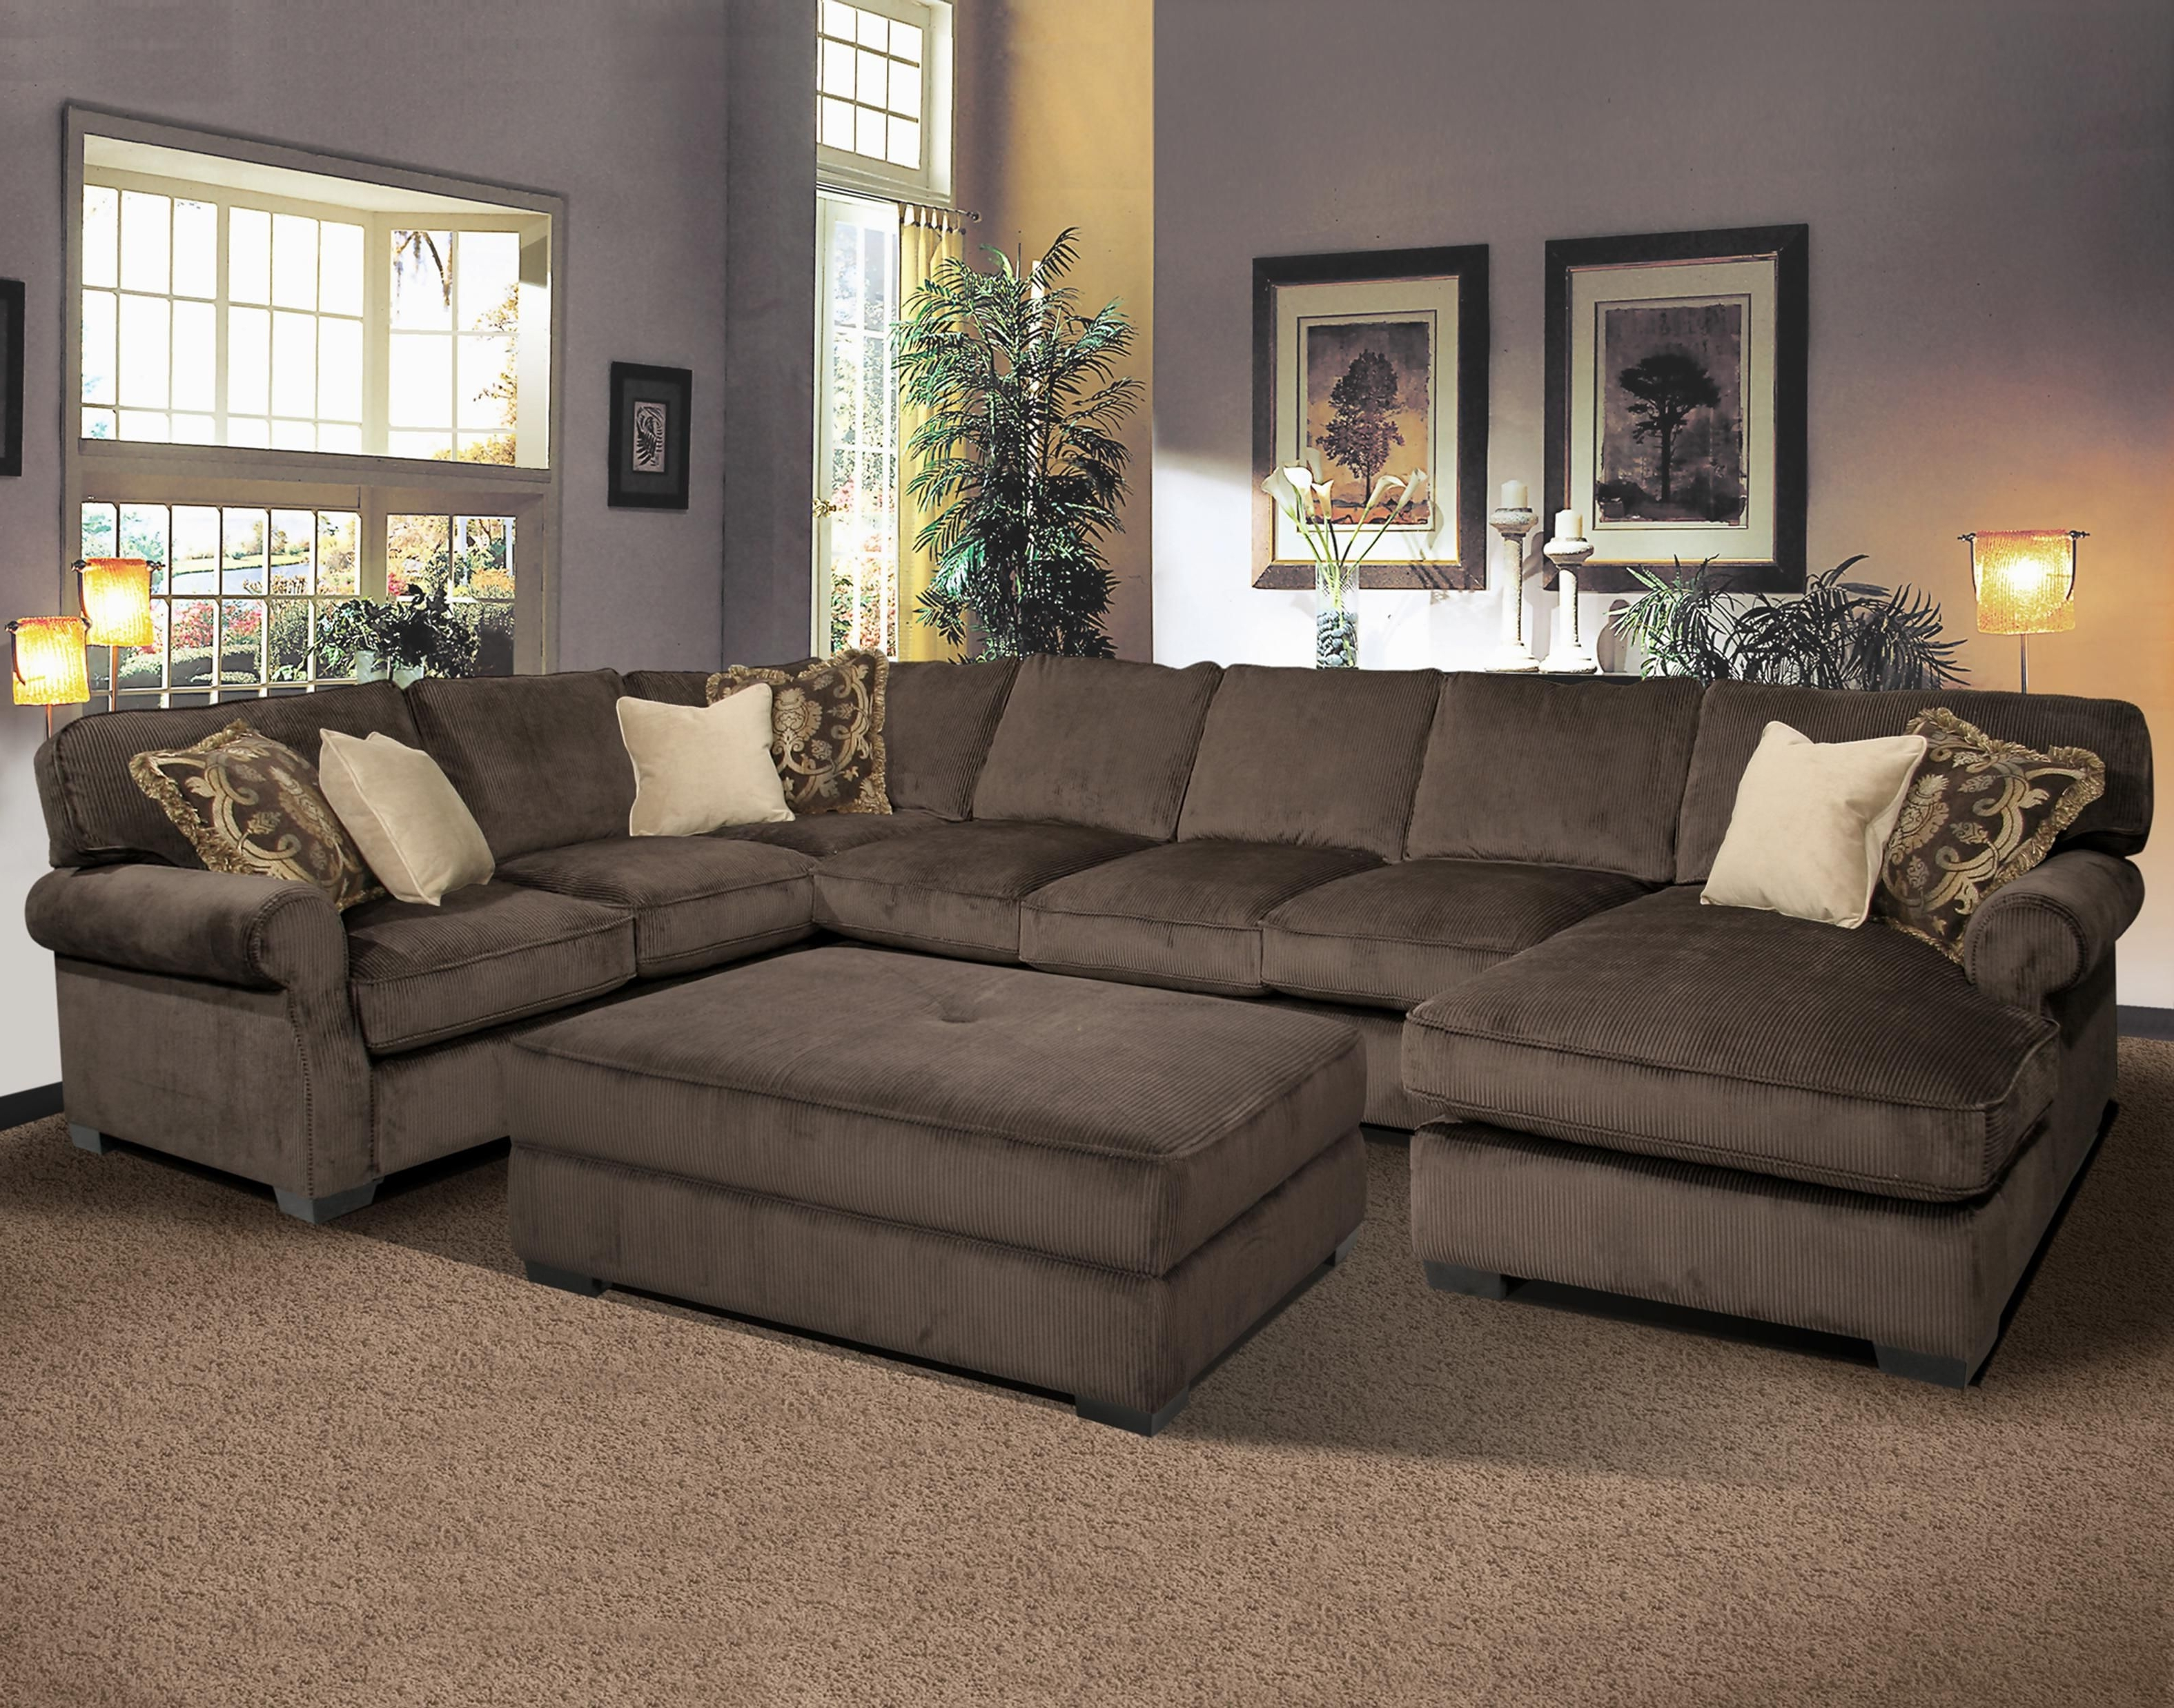 Oversized Sectional Sofas With Well Known Grand Island Oversized Cocktail Ottoman For Sectional Sofa (View 14 of 20)